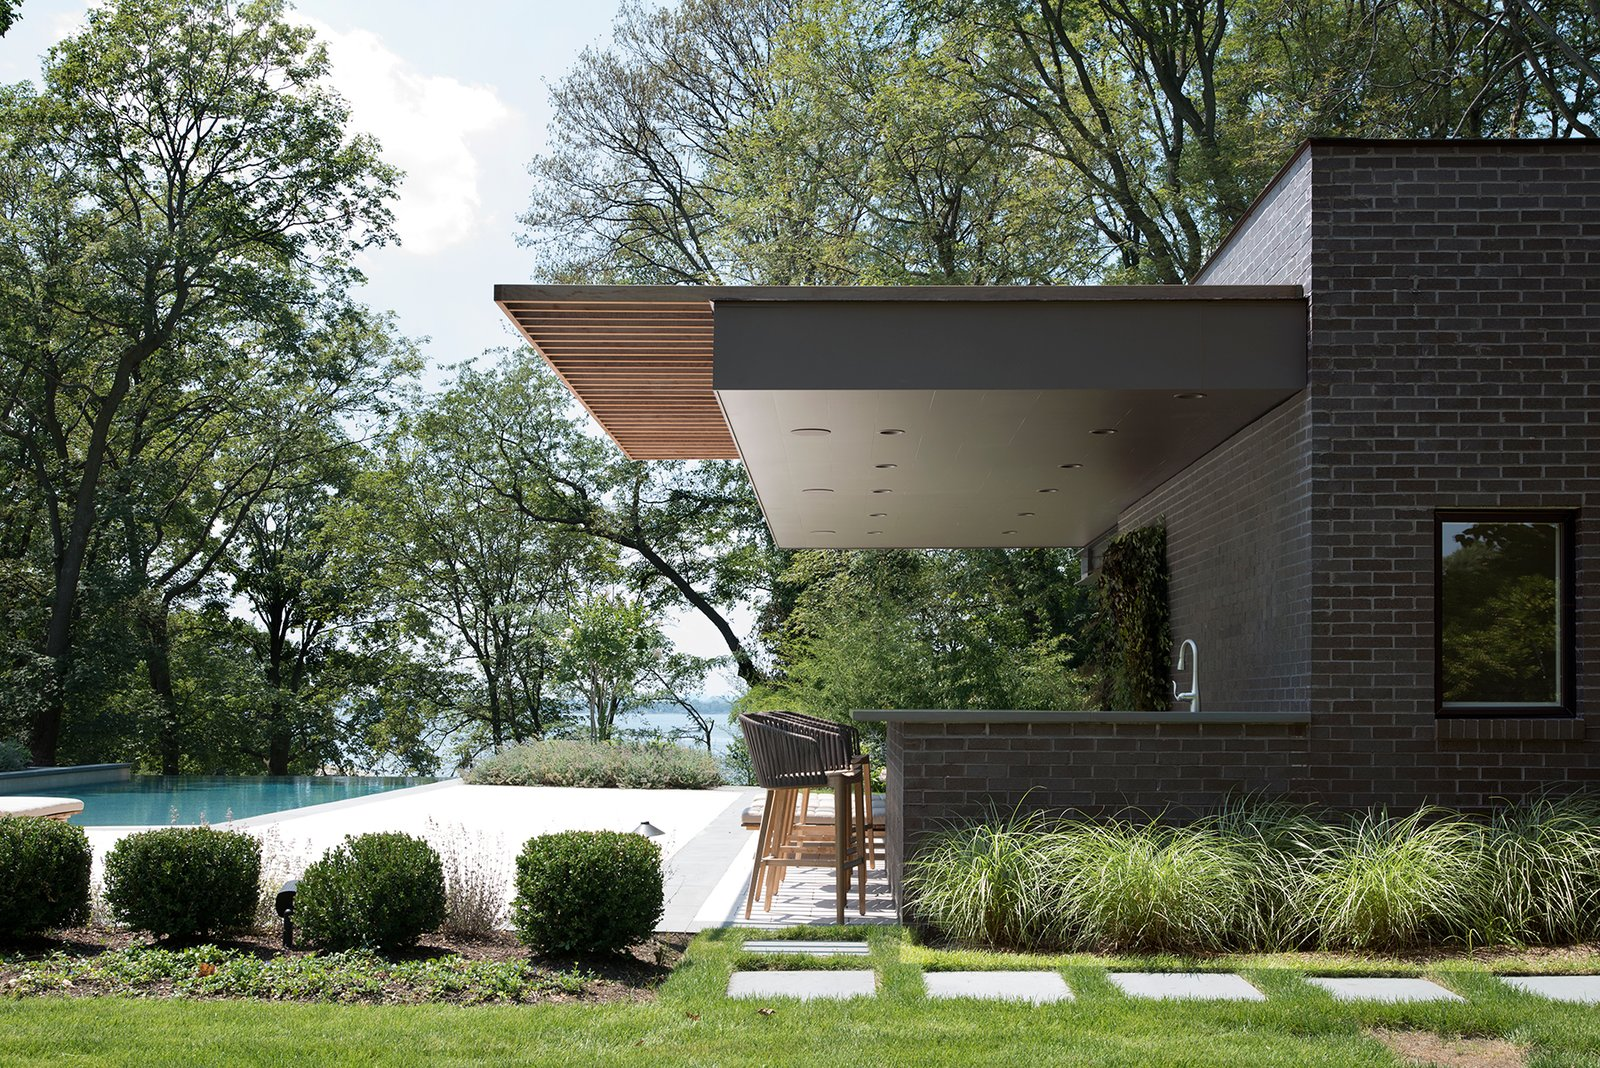 Located in Sands Point, New York, the Free Float Pool House by The UP Studio creates spaces for relaxing by the pool and entertaining with views to the Long Island Sound.